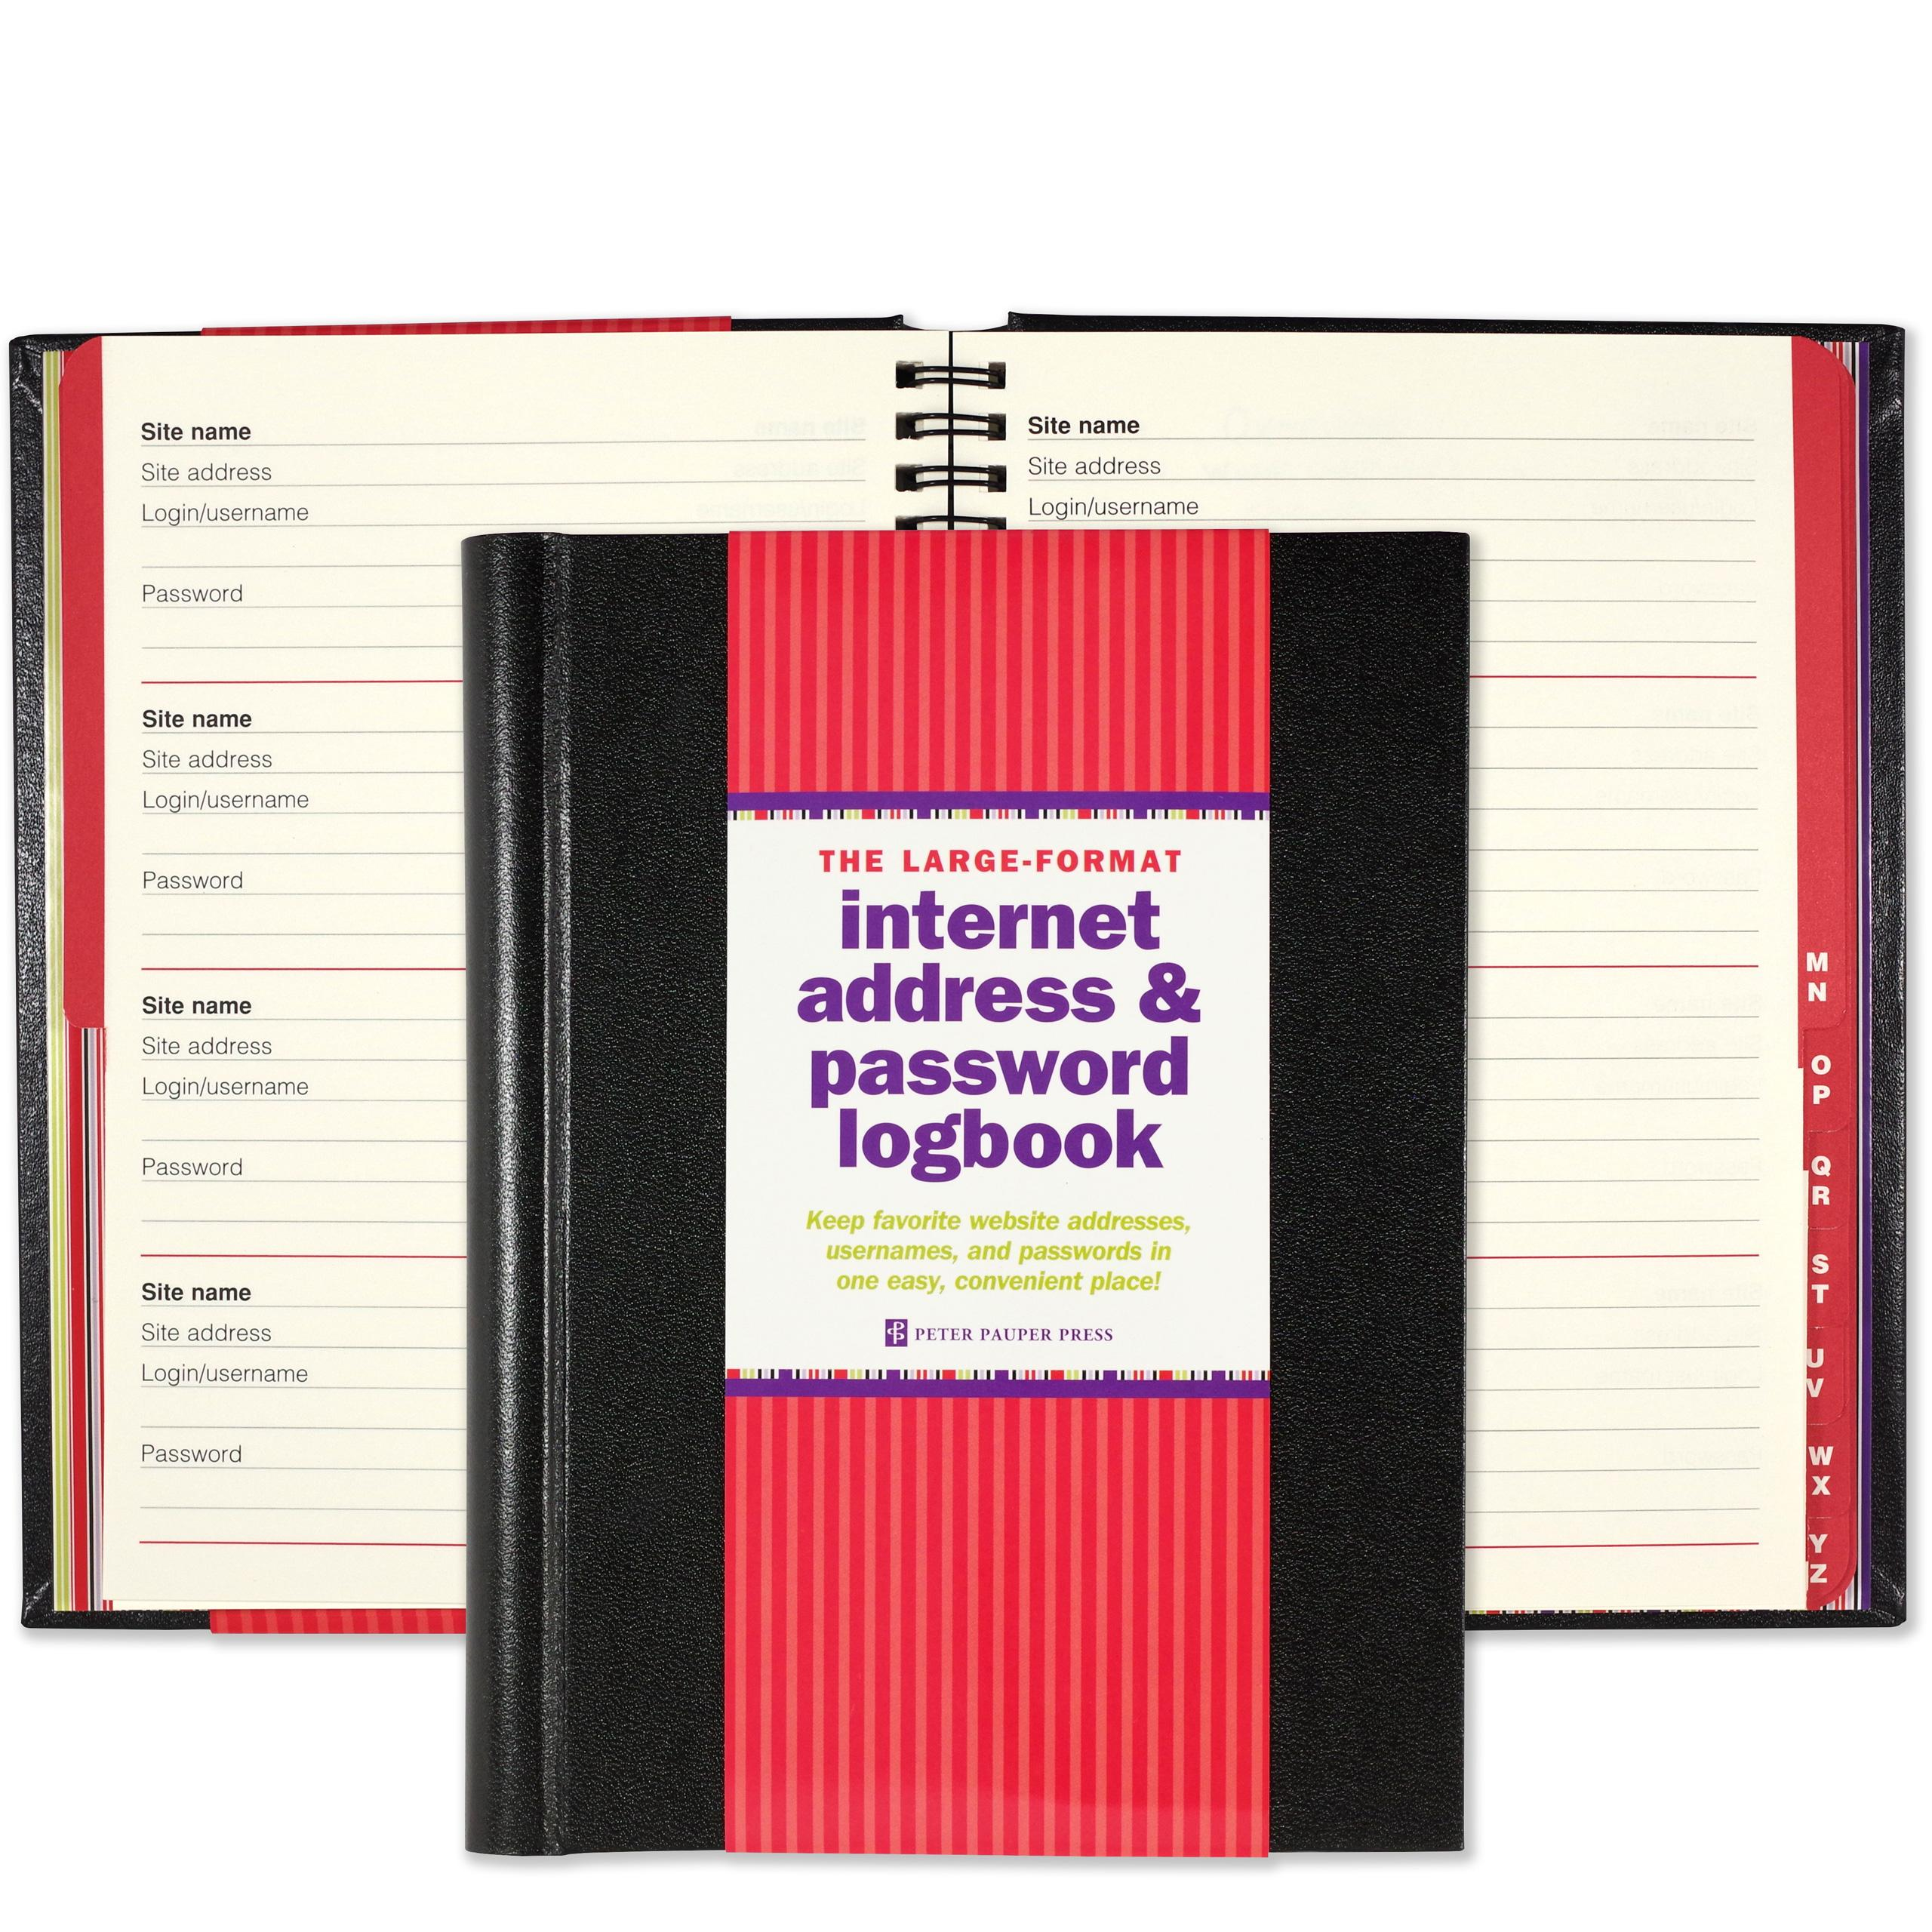 Amazon.com: Large-Format Internet Address & Password Logbook (removable  cover band for security) (9781441315953): Peter Pauper Press: Books